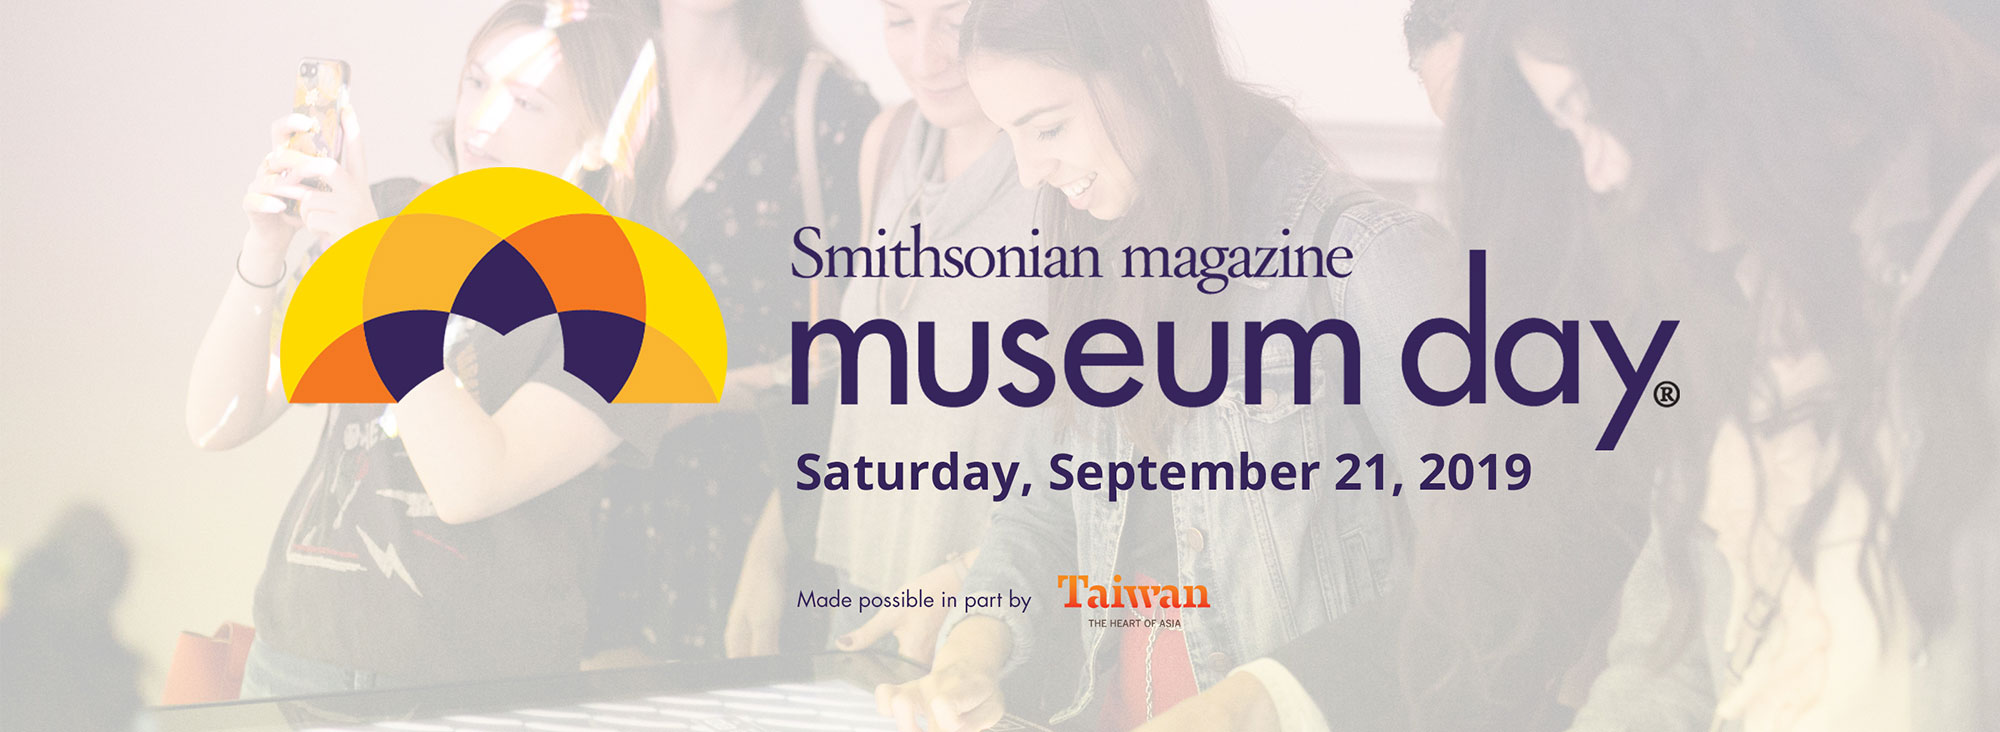 Exciting news - Smithsonian magazine has designated Saturday, September 21, 2019 as the 15th annual Museum Day